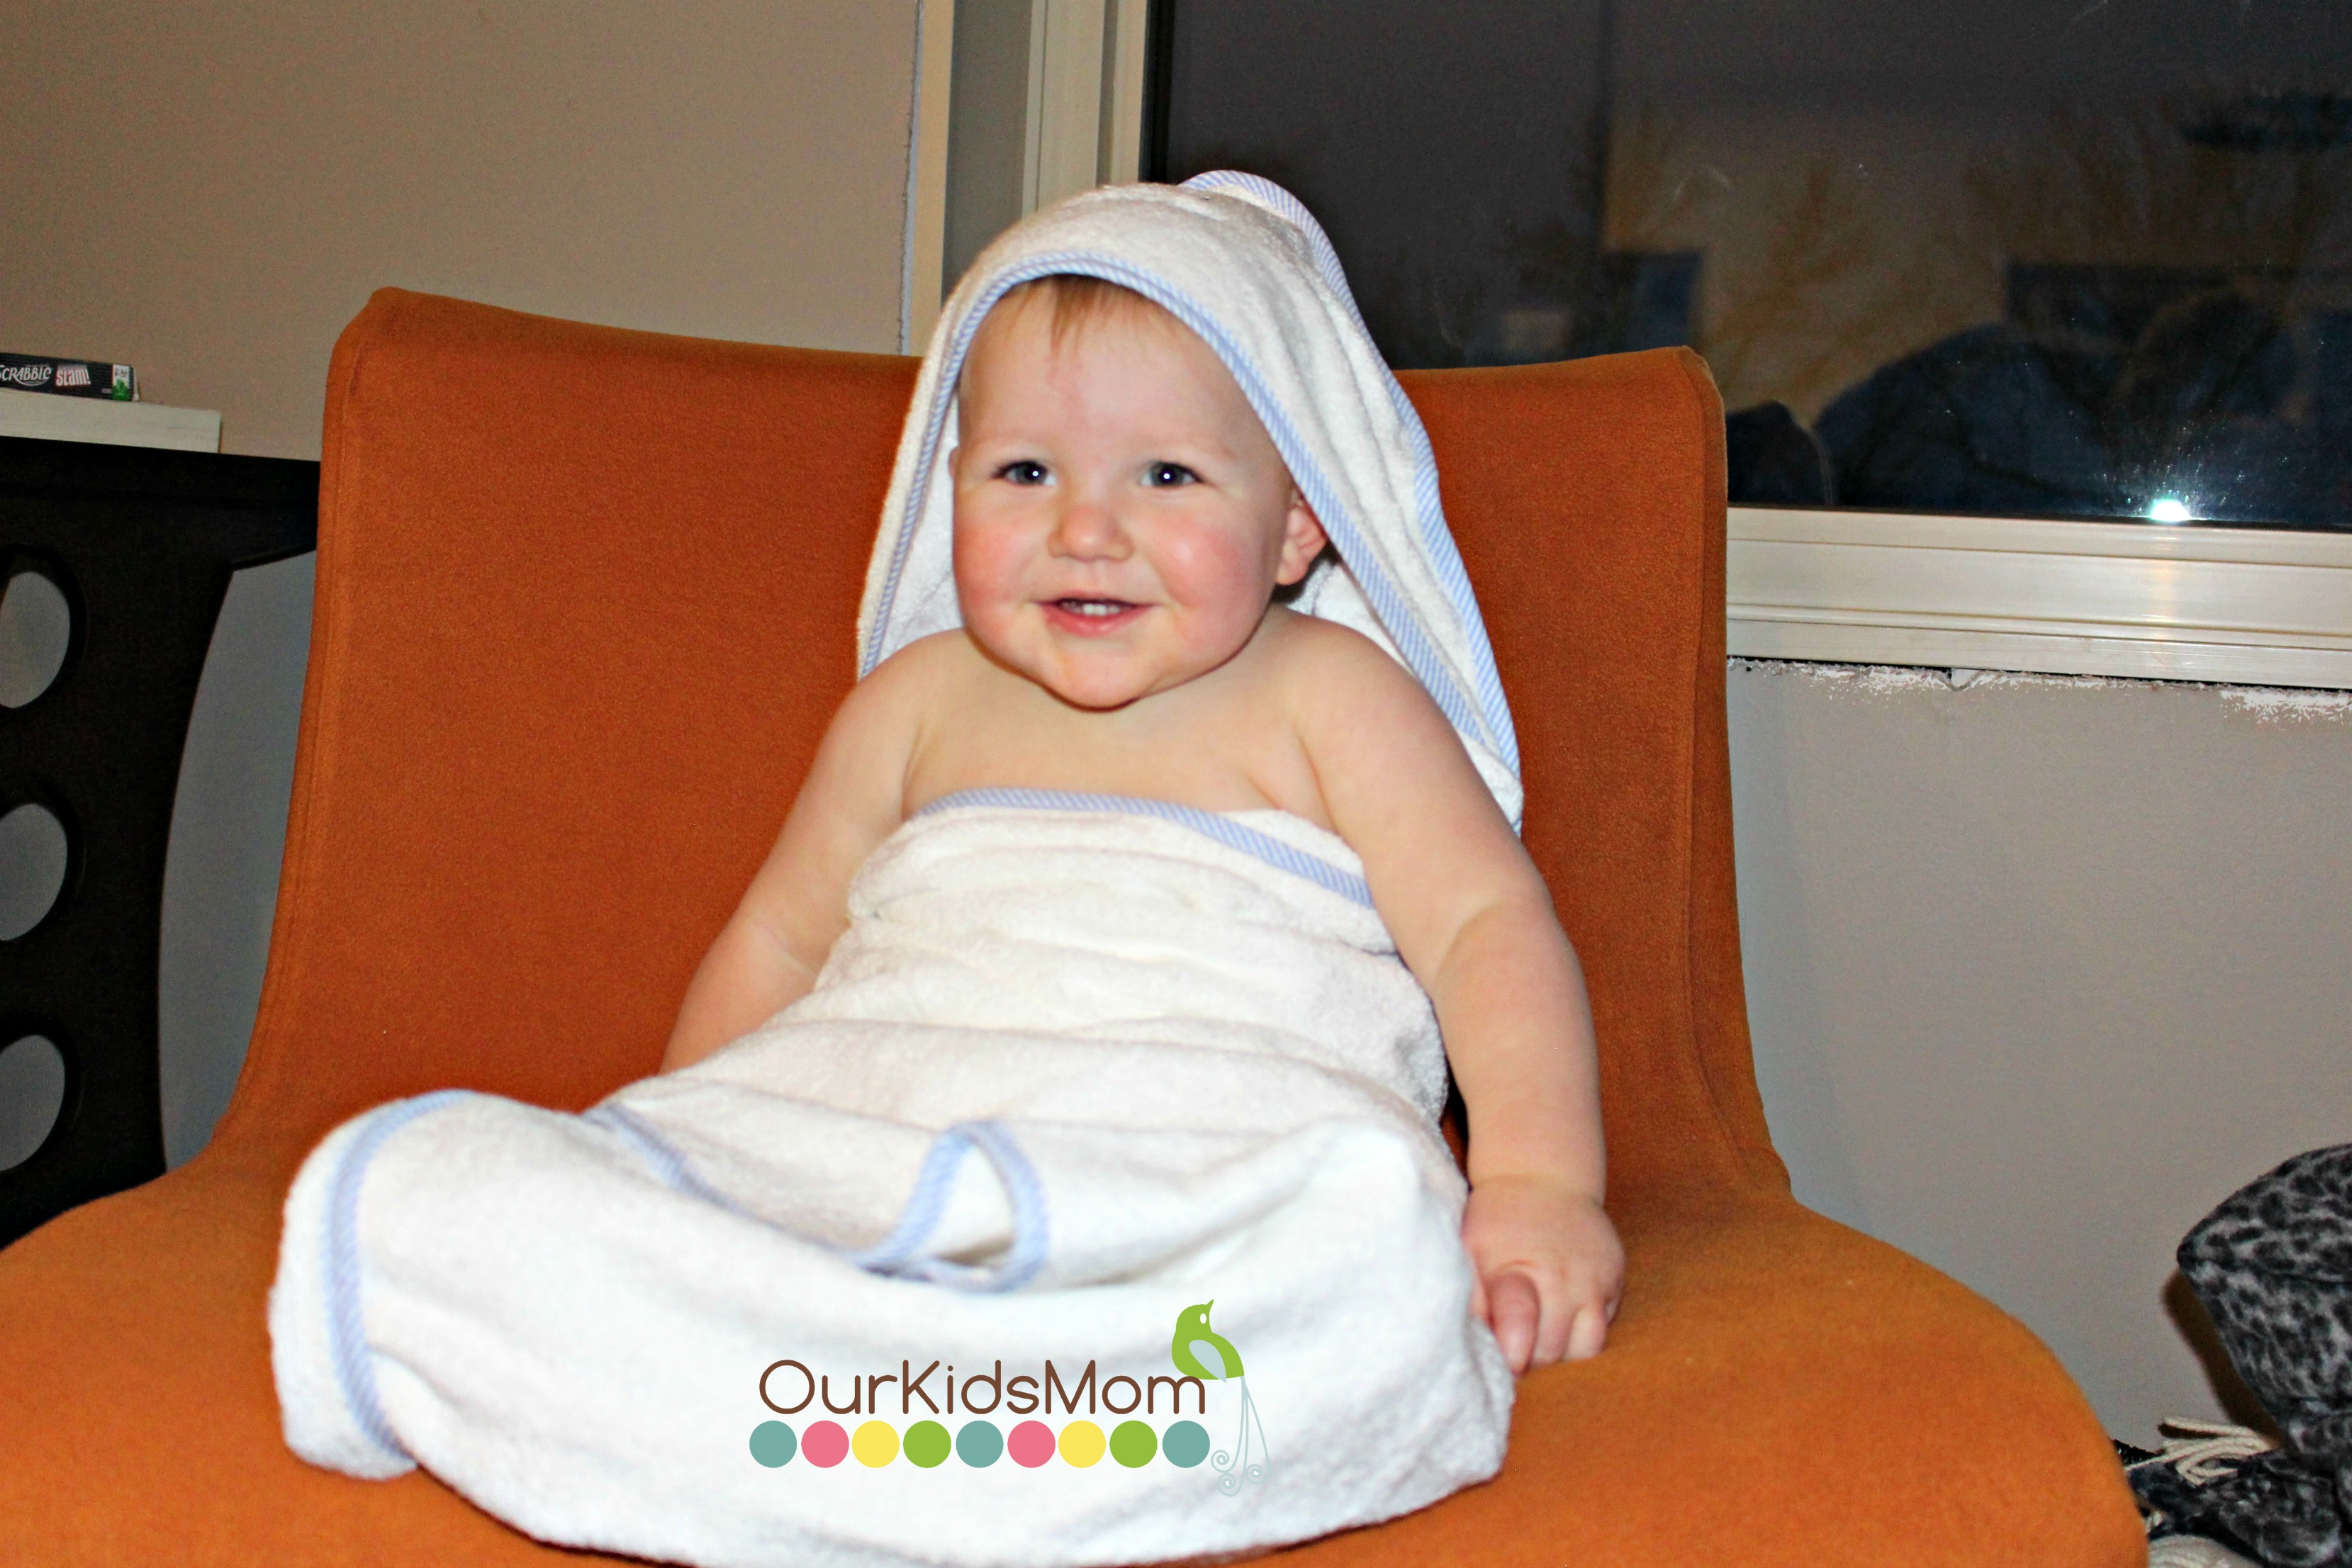 Toddler wearing towel